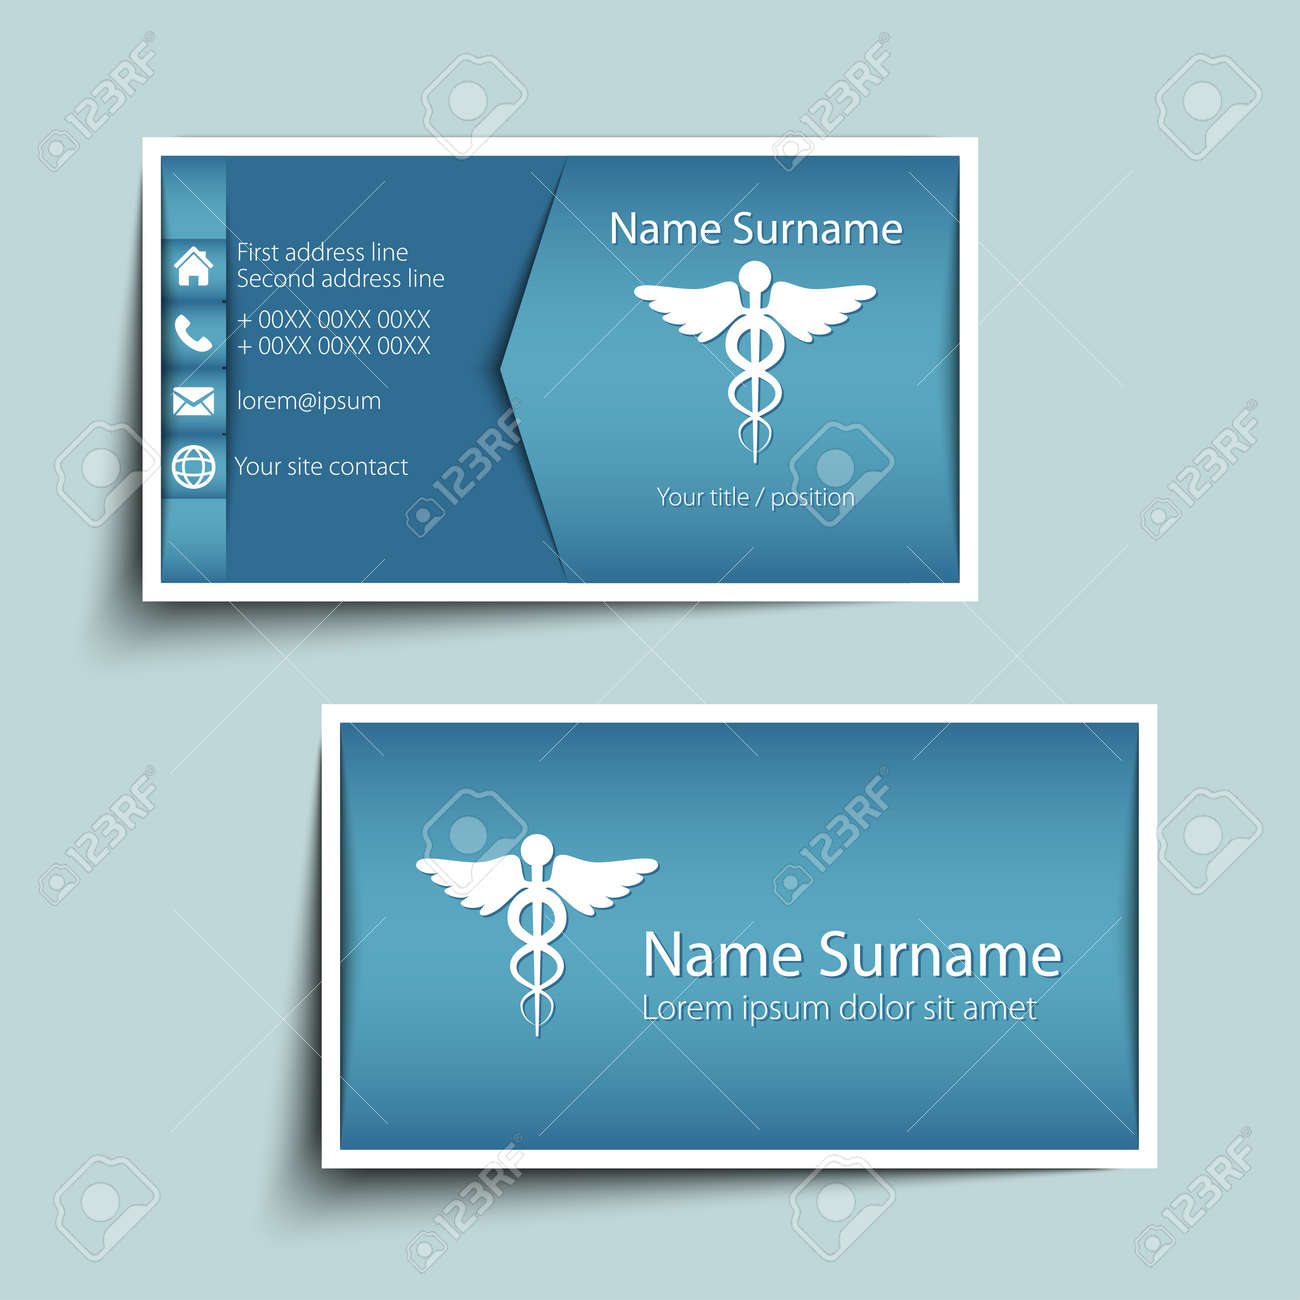 Modern simple business card template royalty free cliparts vectors modern simple business card template stock vector 32510984 friedricerecipe Image collections